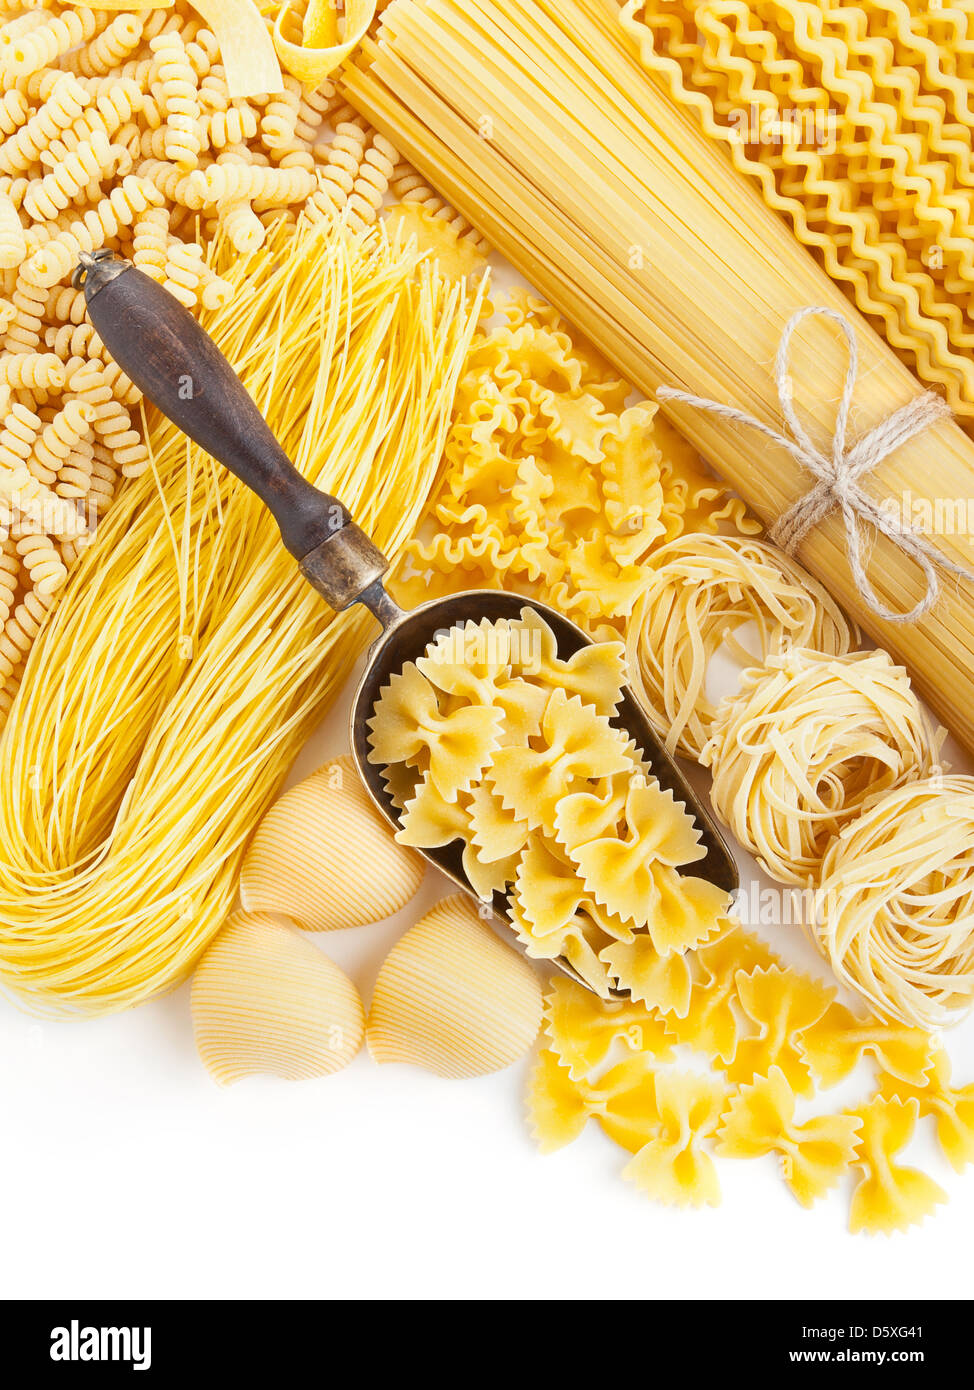 assortment of uncooked pasta on white background - Stock Image